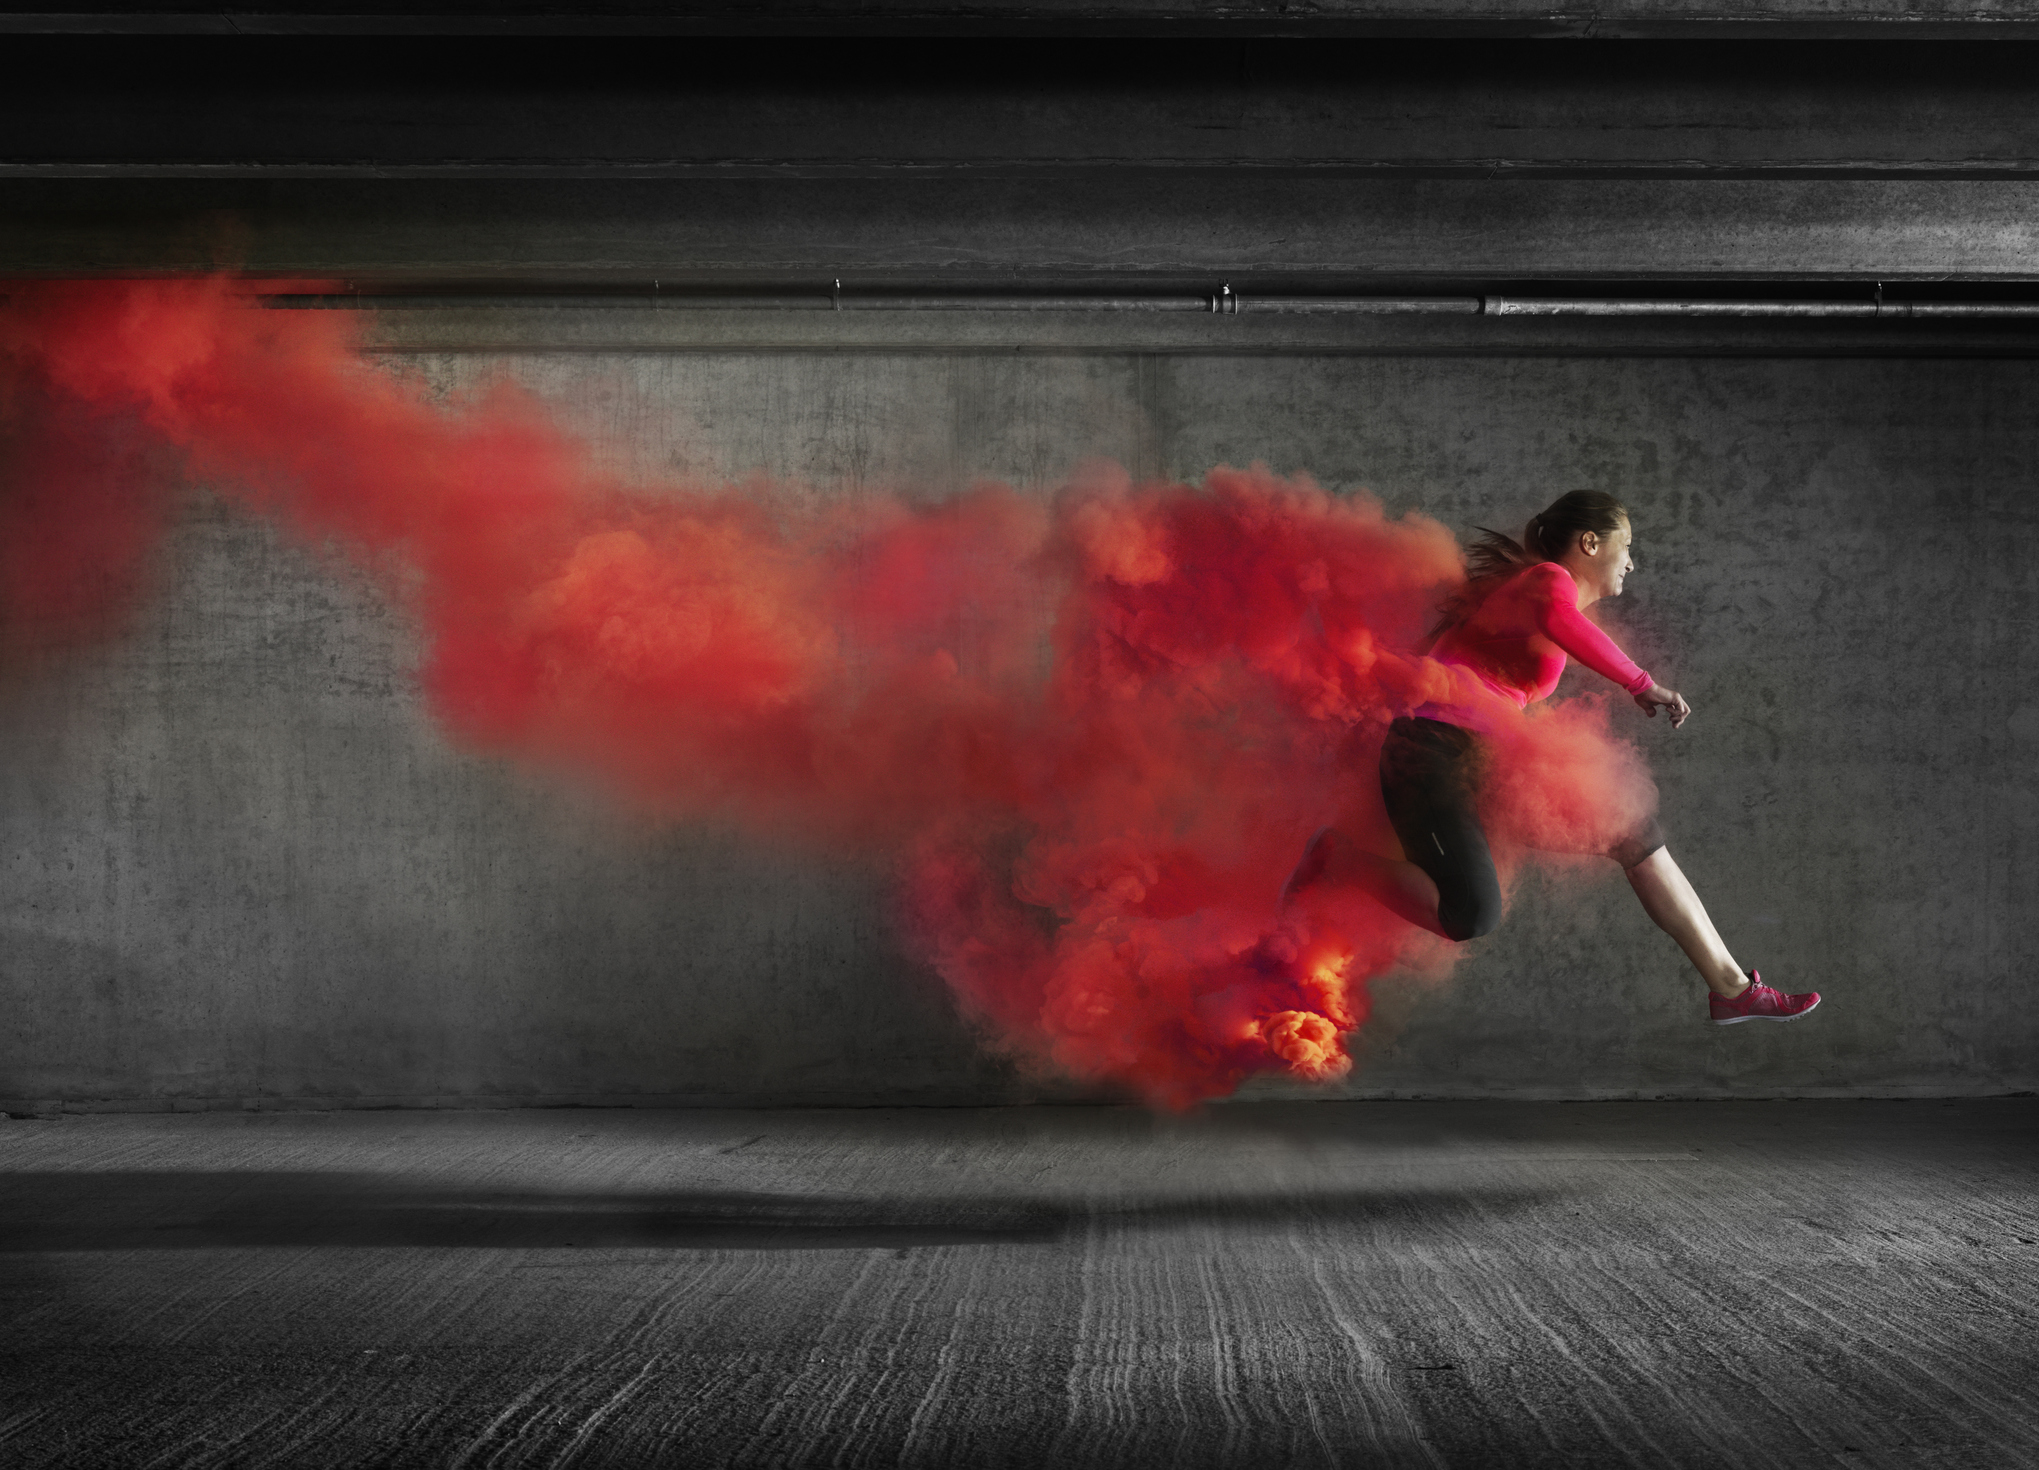 Female athlete leaping through red smoke